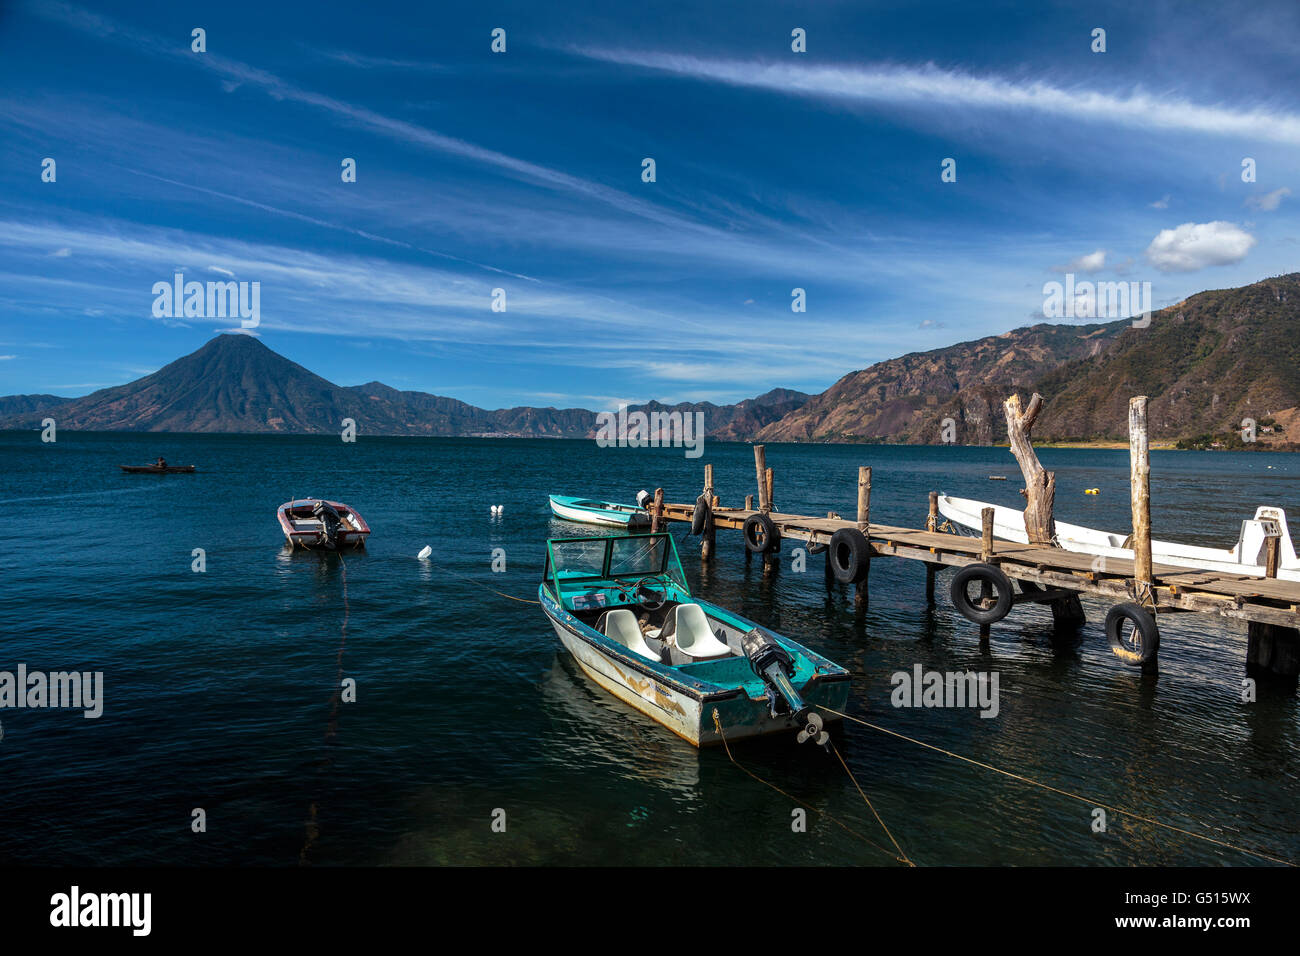 Blue skies over Lago de Atitlan and San Pedro Volcano, Guatemala where boats are moored at the docks on the lakeshore - Stock Image